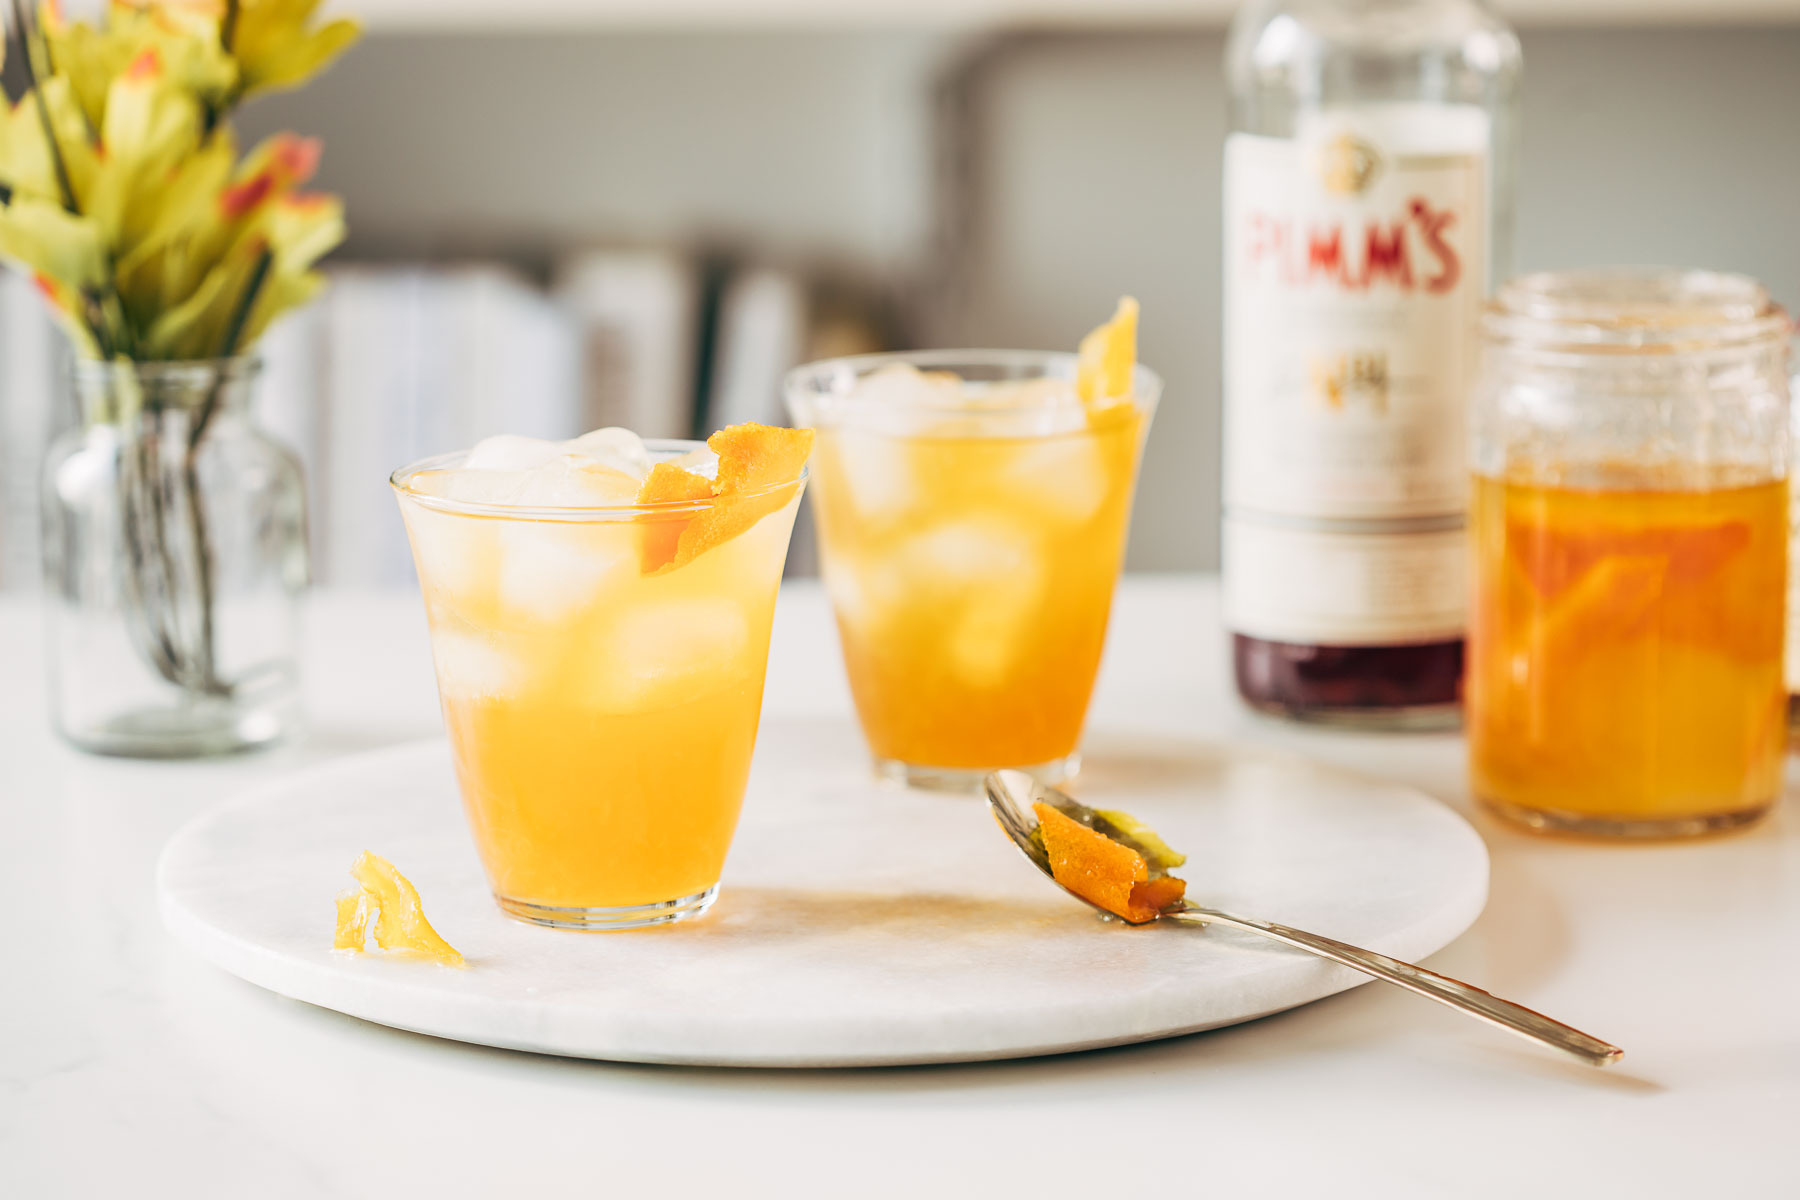 Two yellow cocktails on a marble board with a bottle of Pimm's in the background.